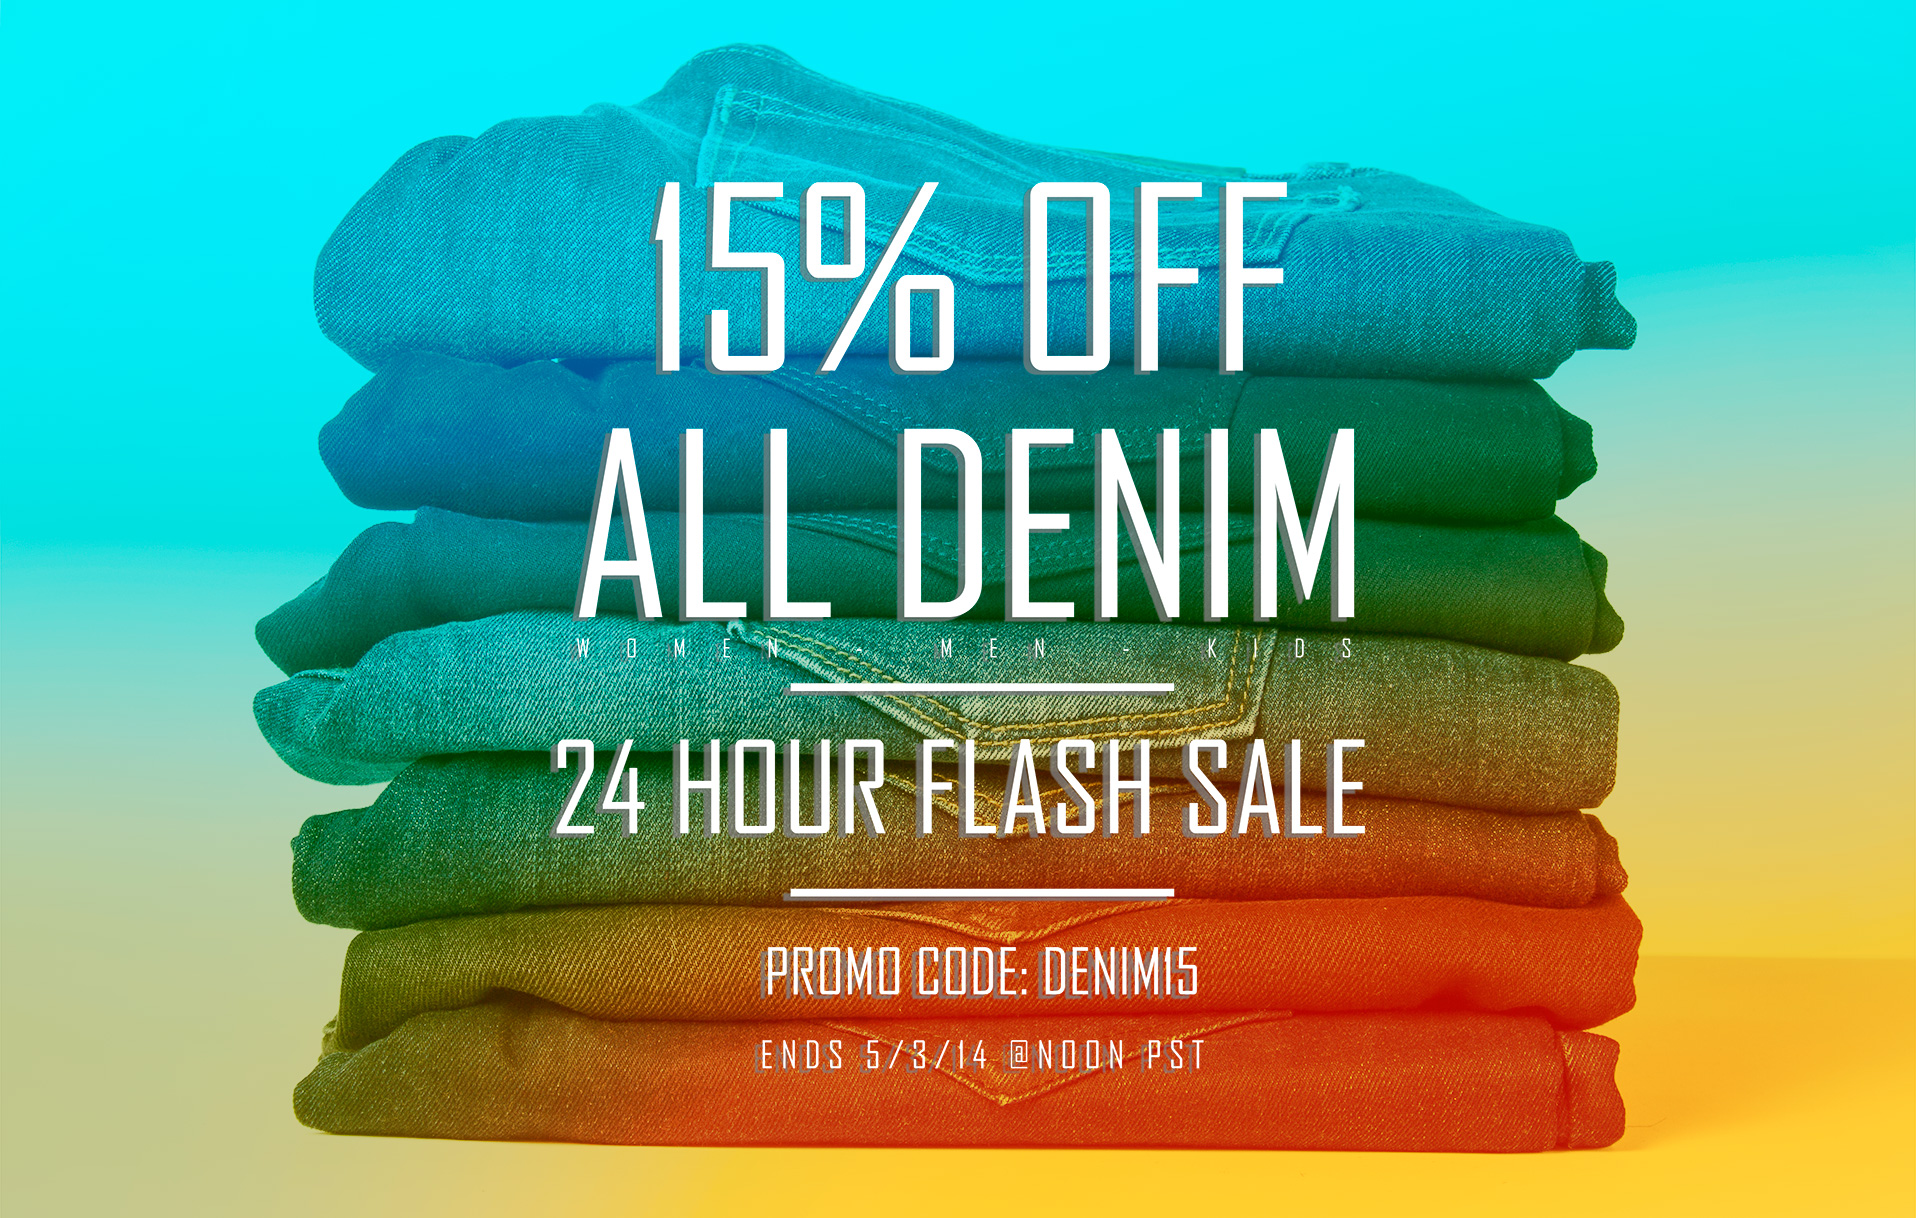 denim_15_sale.jpg